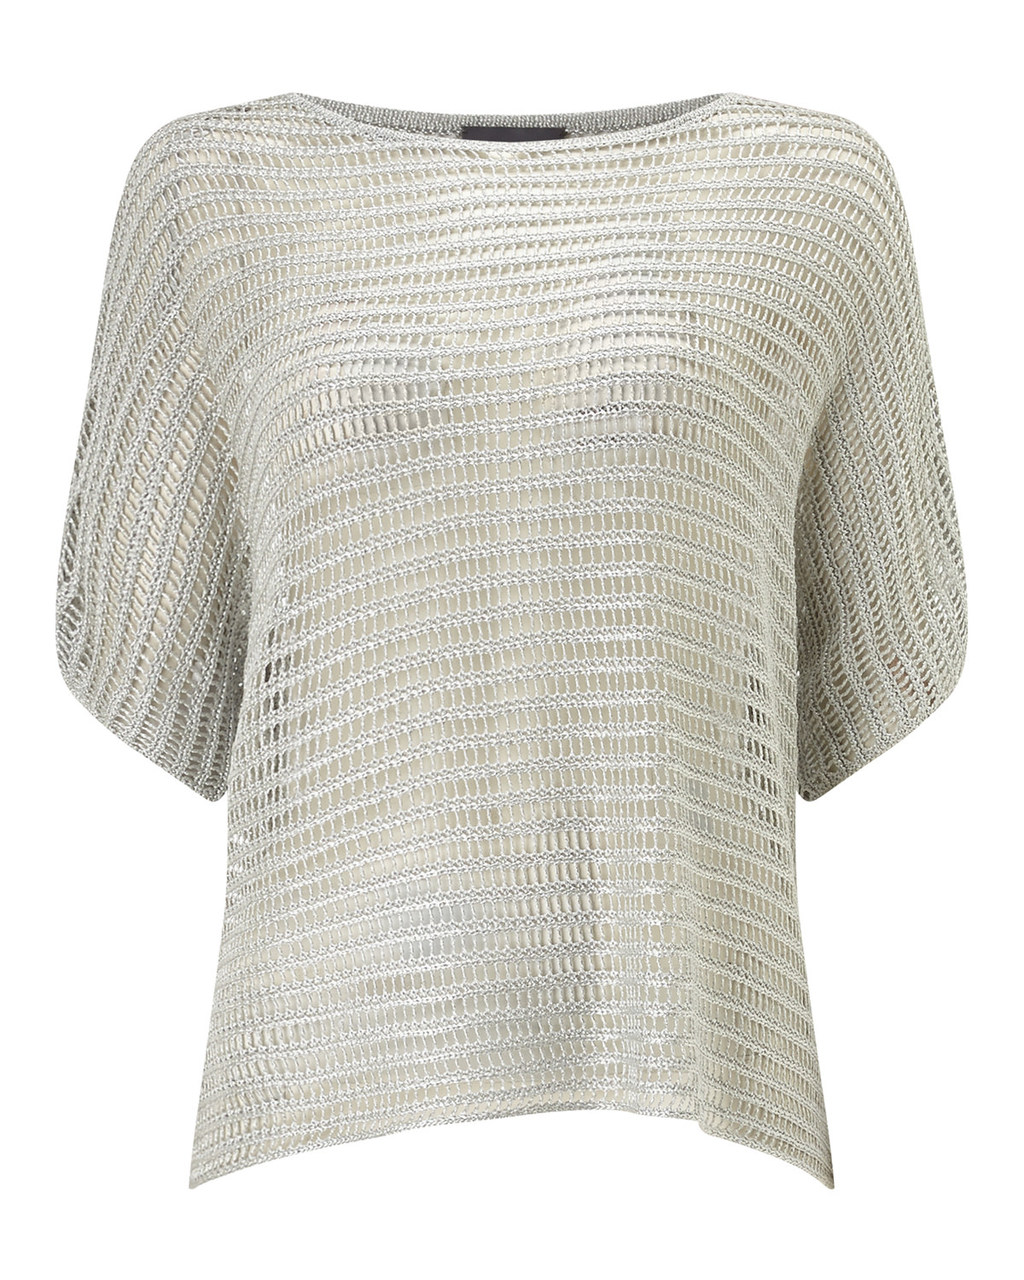 Maura Metallic Knit - neckline: slash/boat neckline; sleeve style: dolman/batwing; pattern: plain; style: standard; predominant colour: gold; occasions: casual, creative work; length: standard; fibres: viscose/rayon - stretch; fit: loose; sleeve length: short sleeve; texture group: knits/crochet; pattern type: knitted - fine stitch; season: s/s 2016; wardrobe: highlight